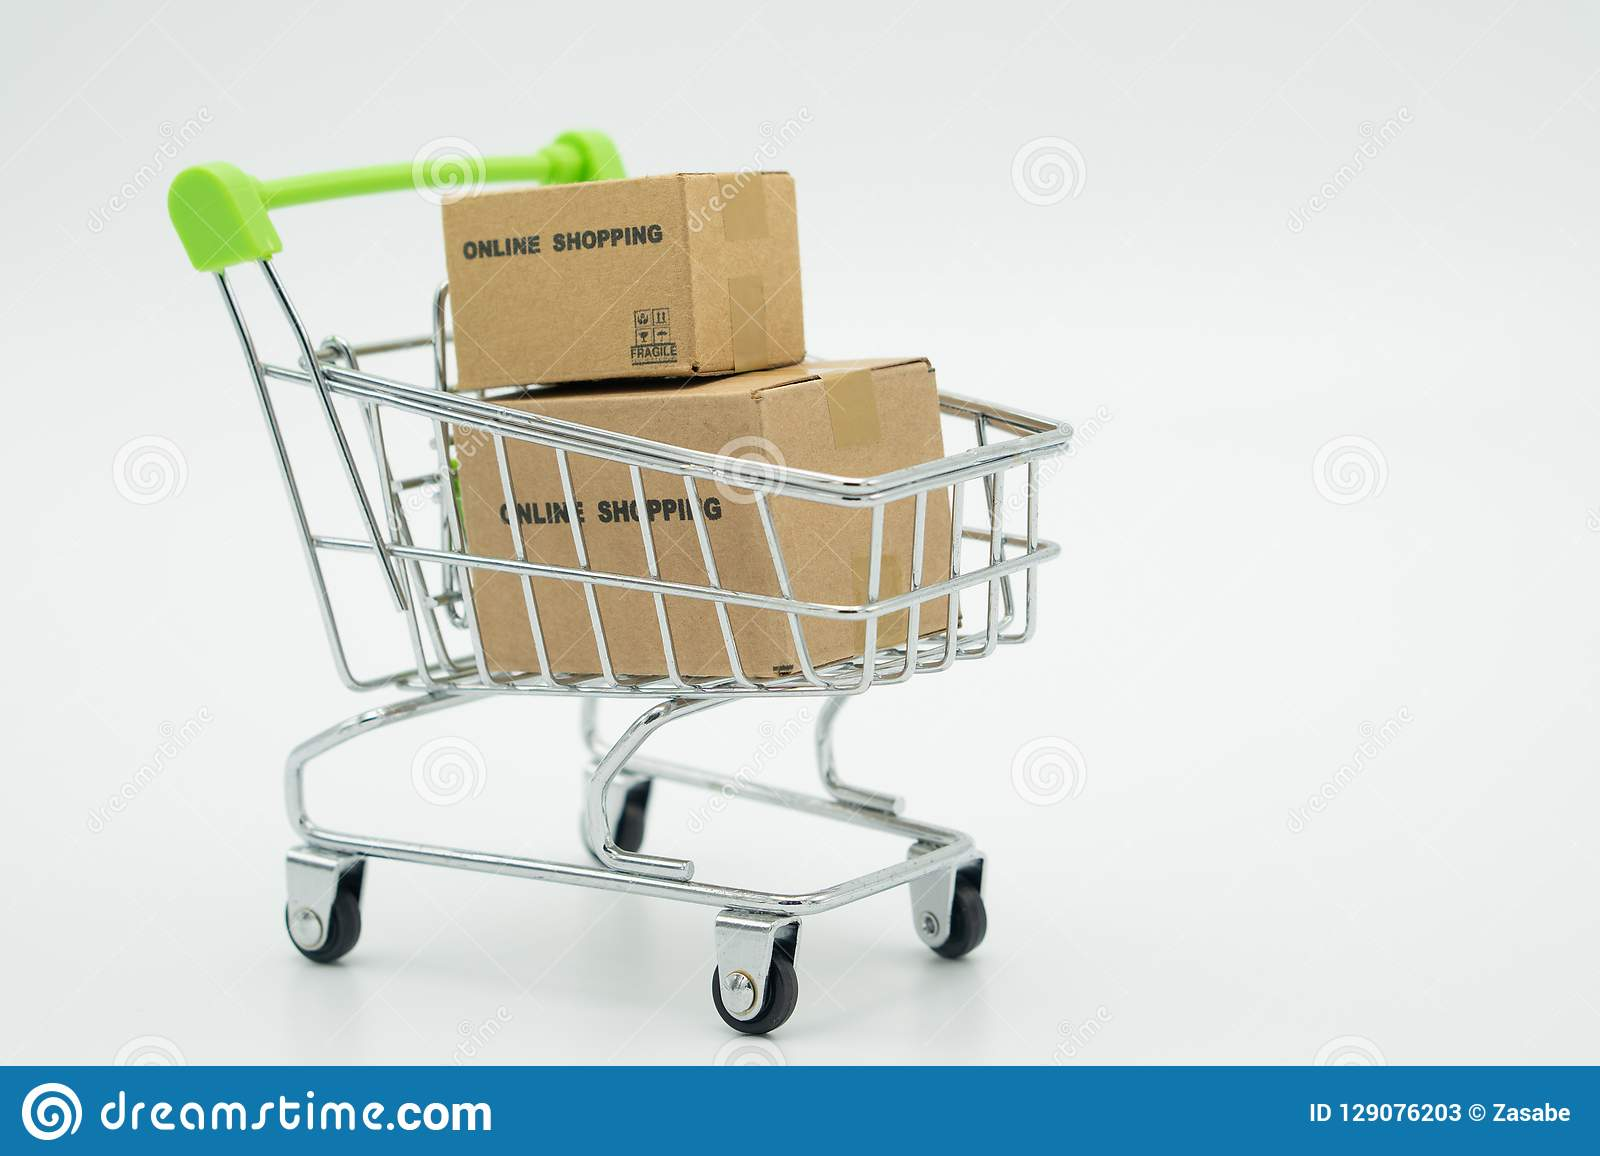 Online shopping with a shopping cart and shopping bags delivery